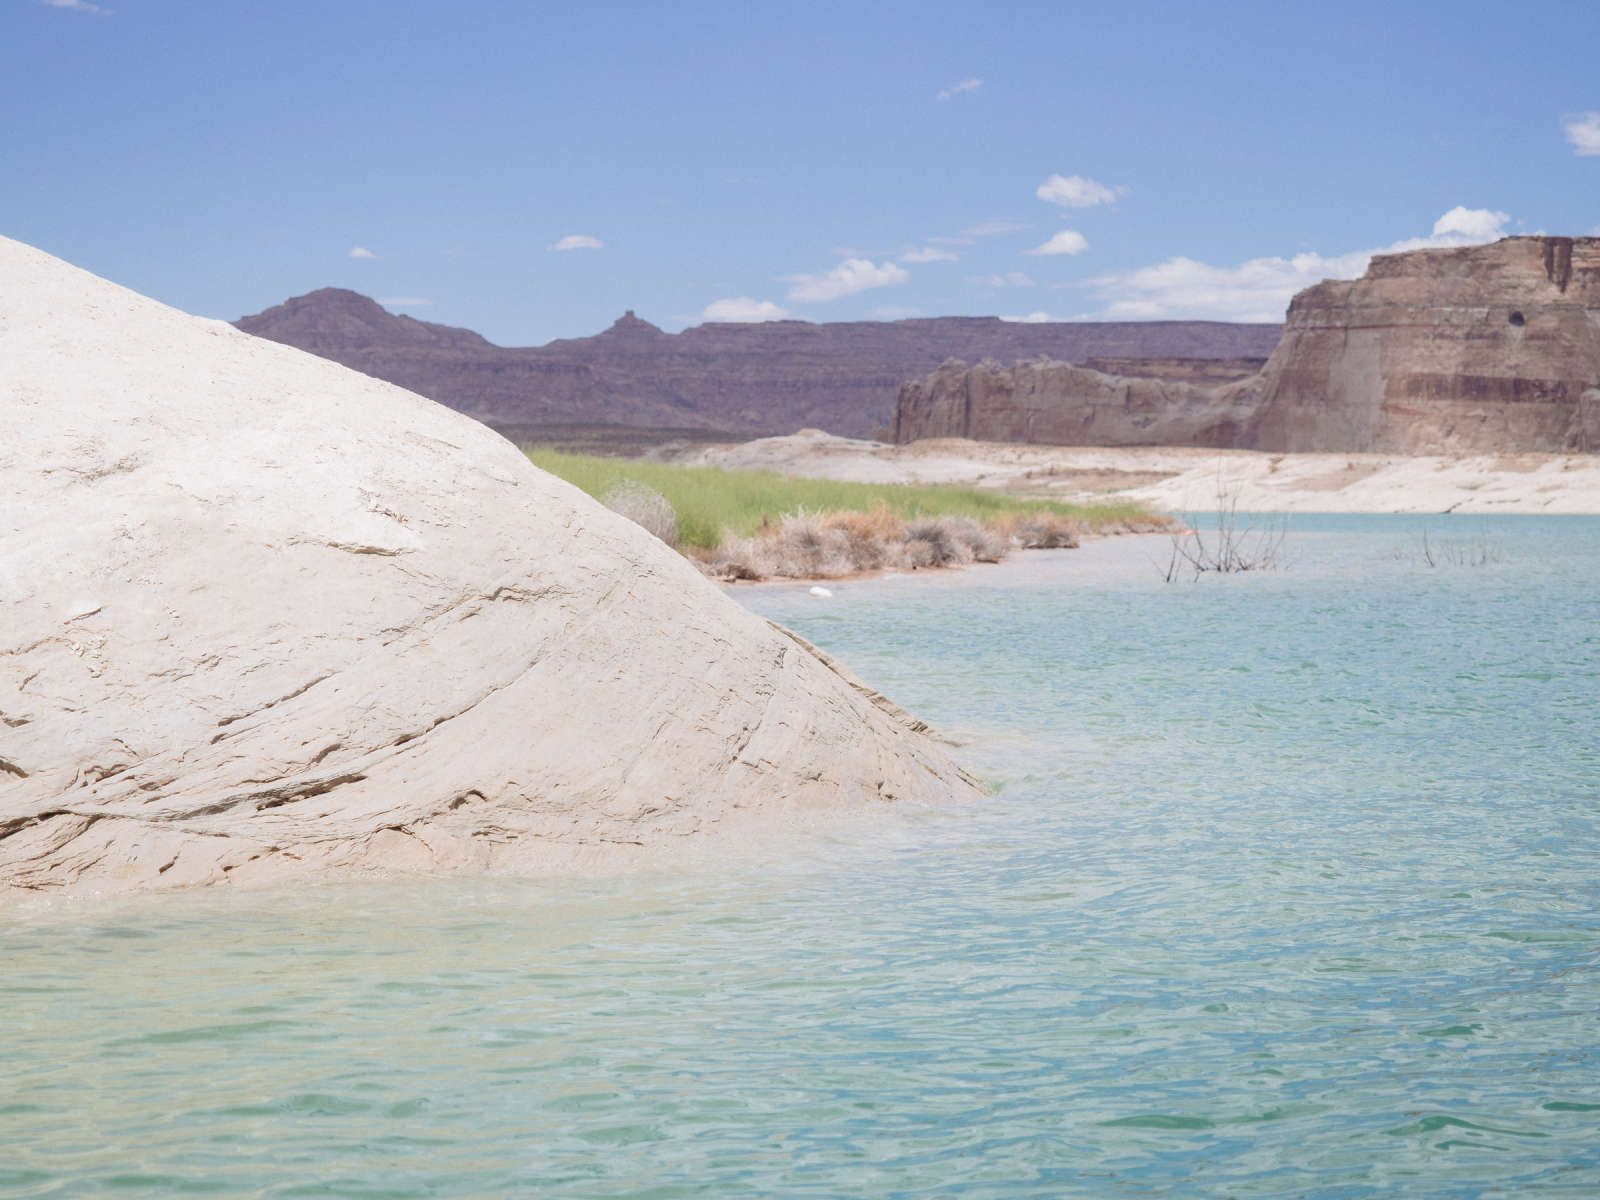 Lone Rock Beach Primitive Camping In Glen Canyon Utah Get Back To Basics On Lake Powell S Wahweap Bay Over At Campground